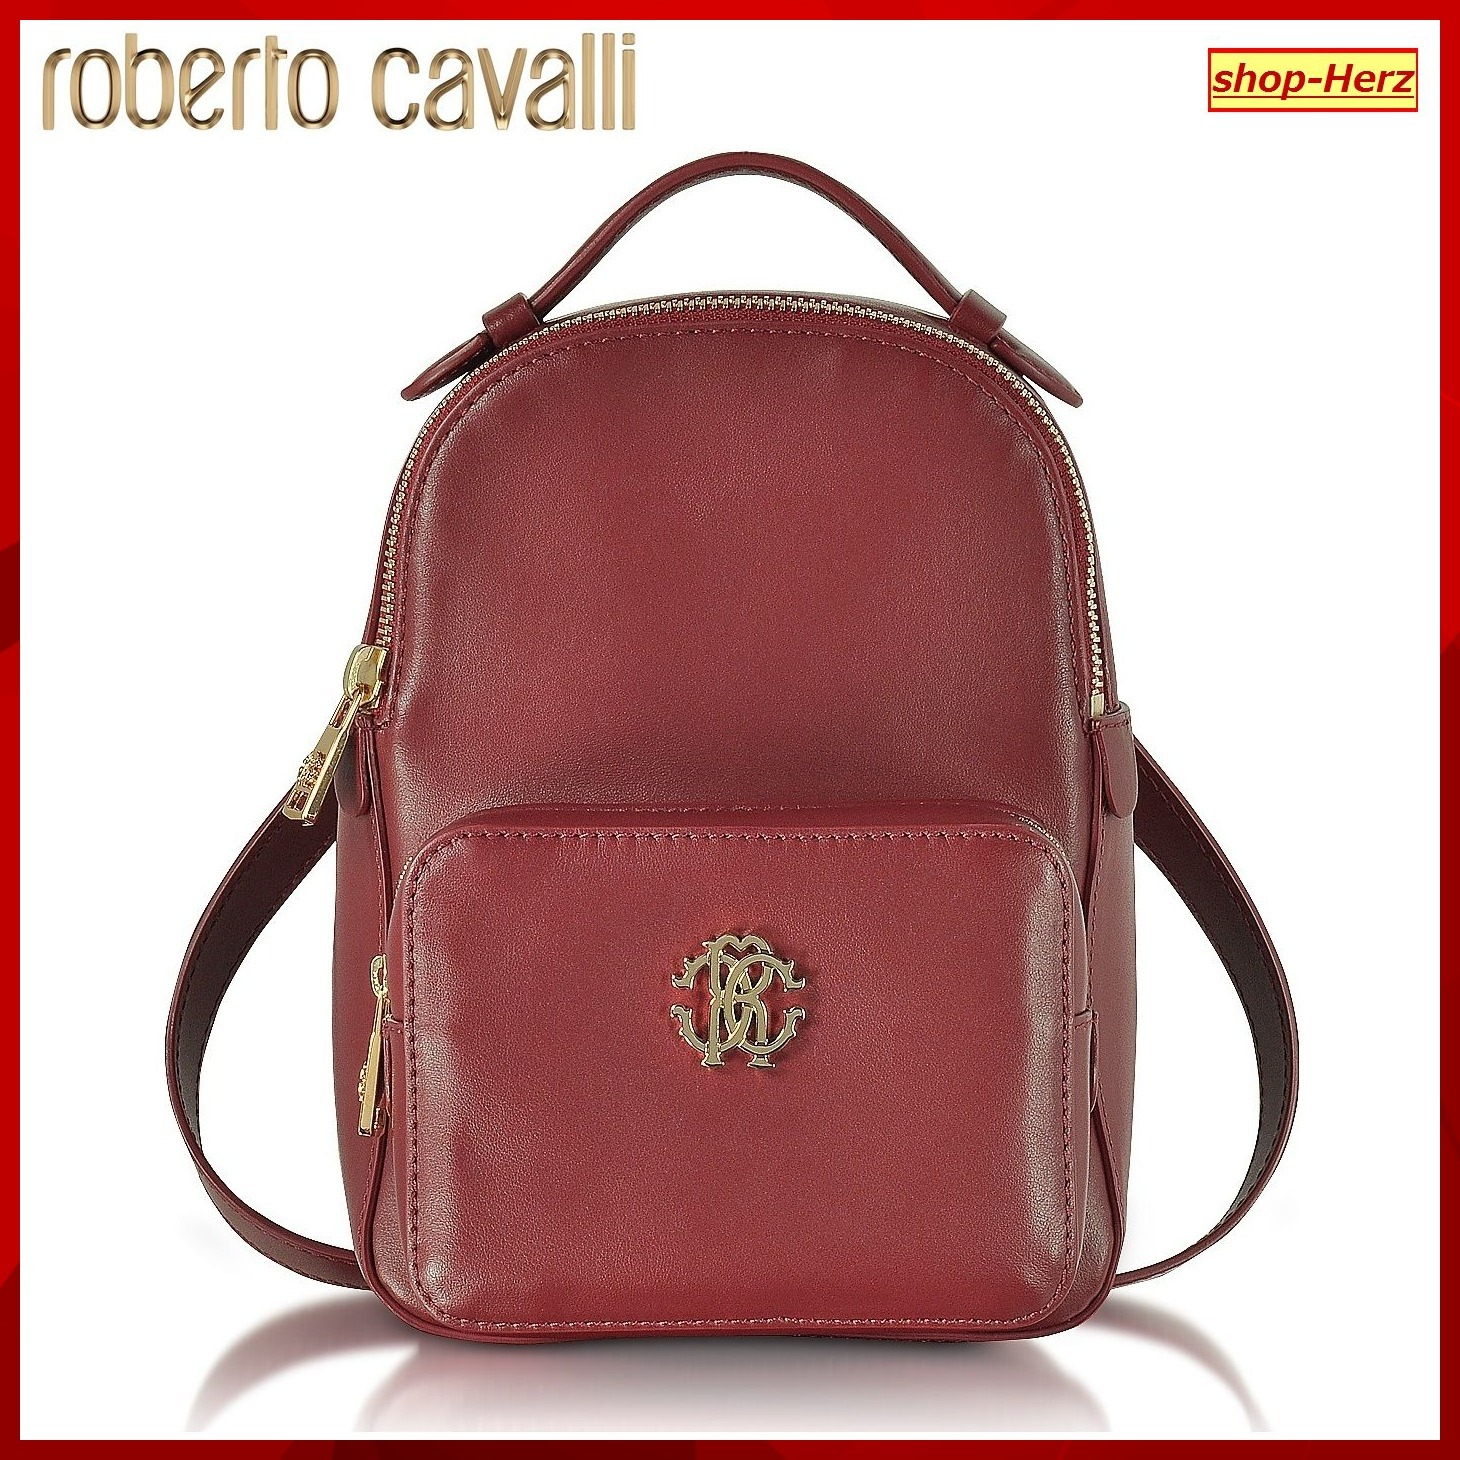 ★Roberto Cavalli★ Small Leather Red バックパック 関税込